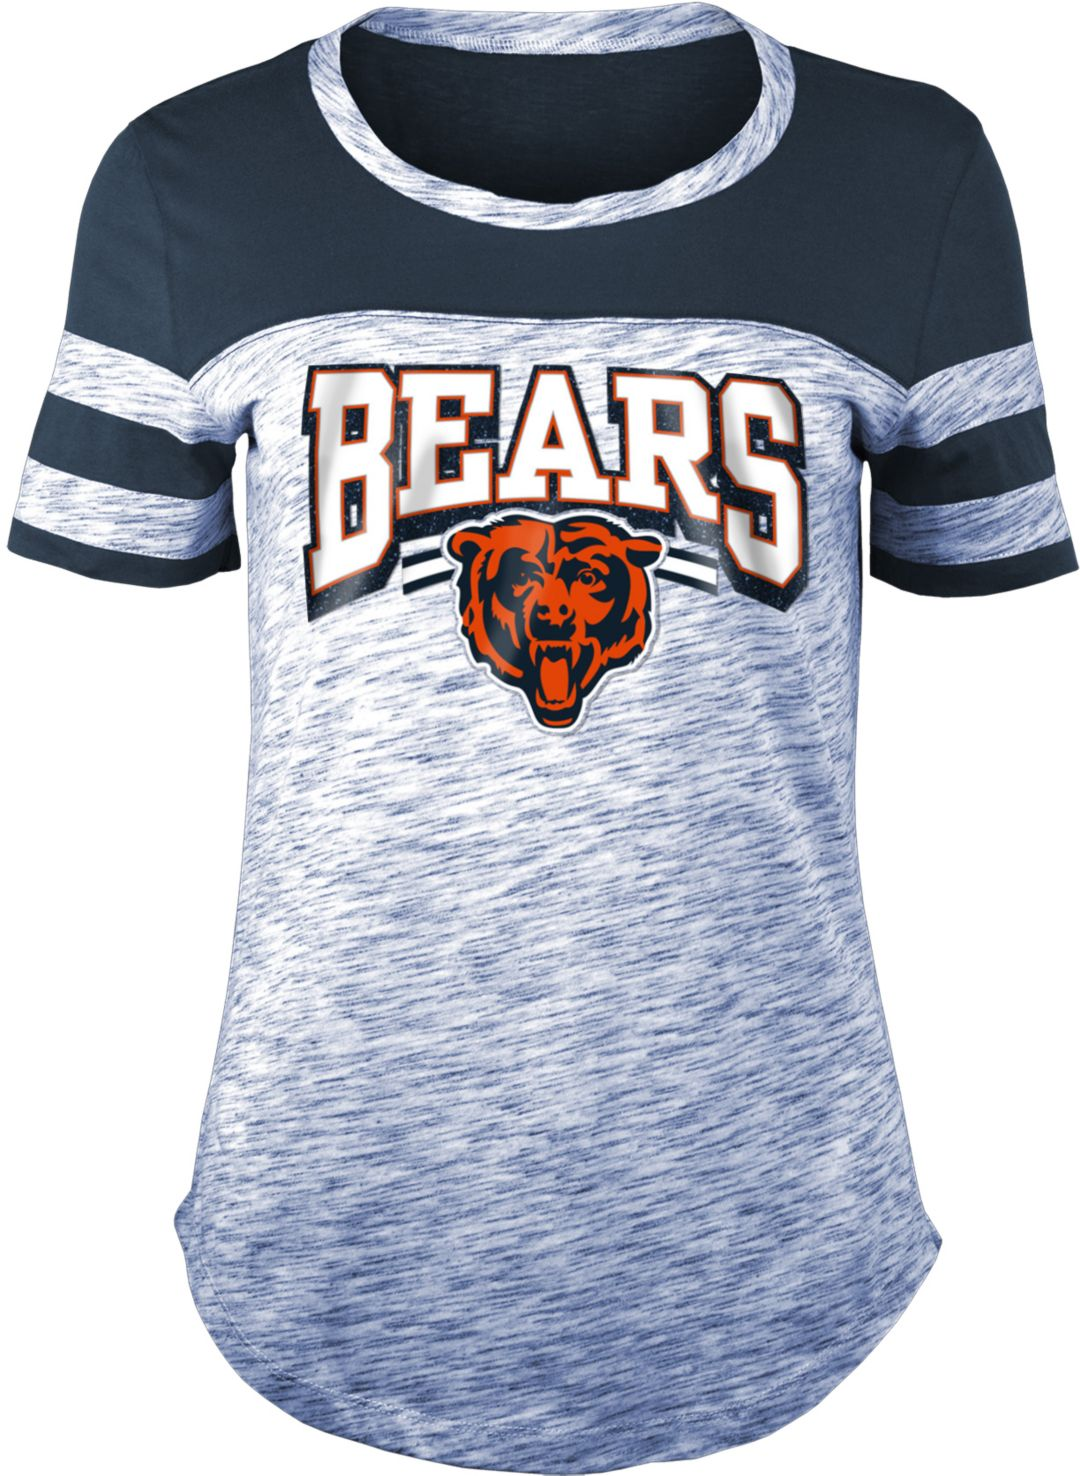 meet 016f8 d27f4 NFL Team Apparel Women's Chicago Bears Space Dye Glitter Navy T-Shirt